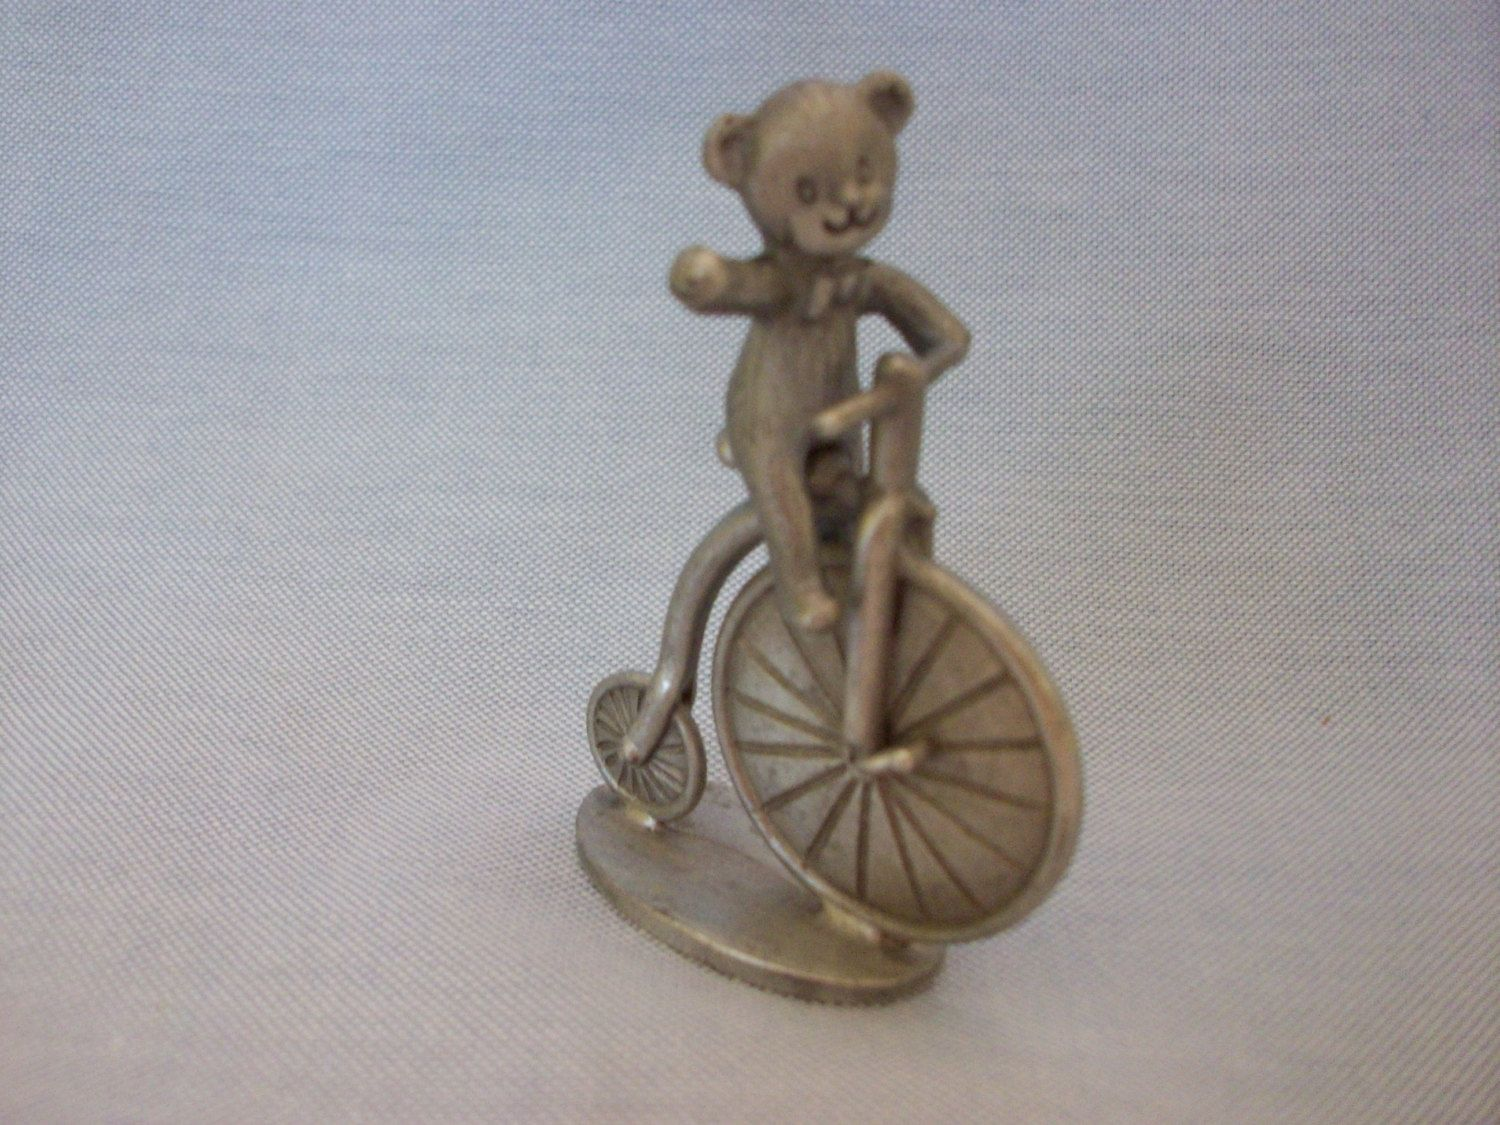 Sale***Spoontiques Pewter Figurine #684 Bear Riding Bicycle